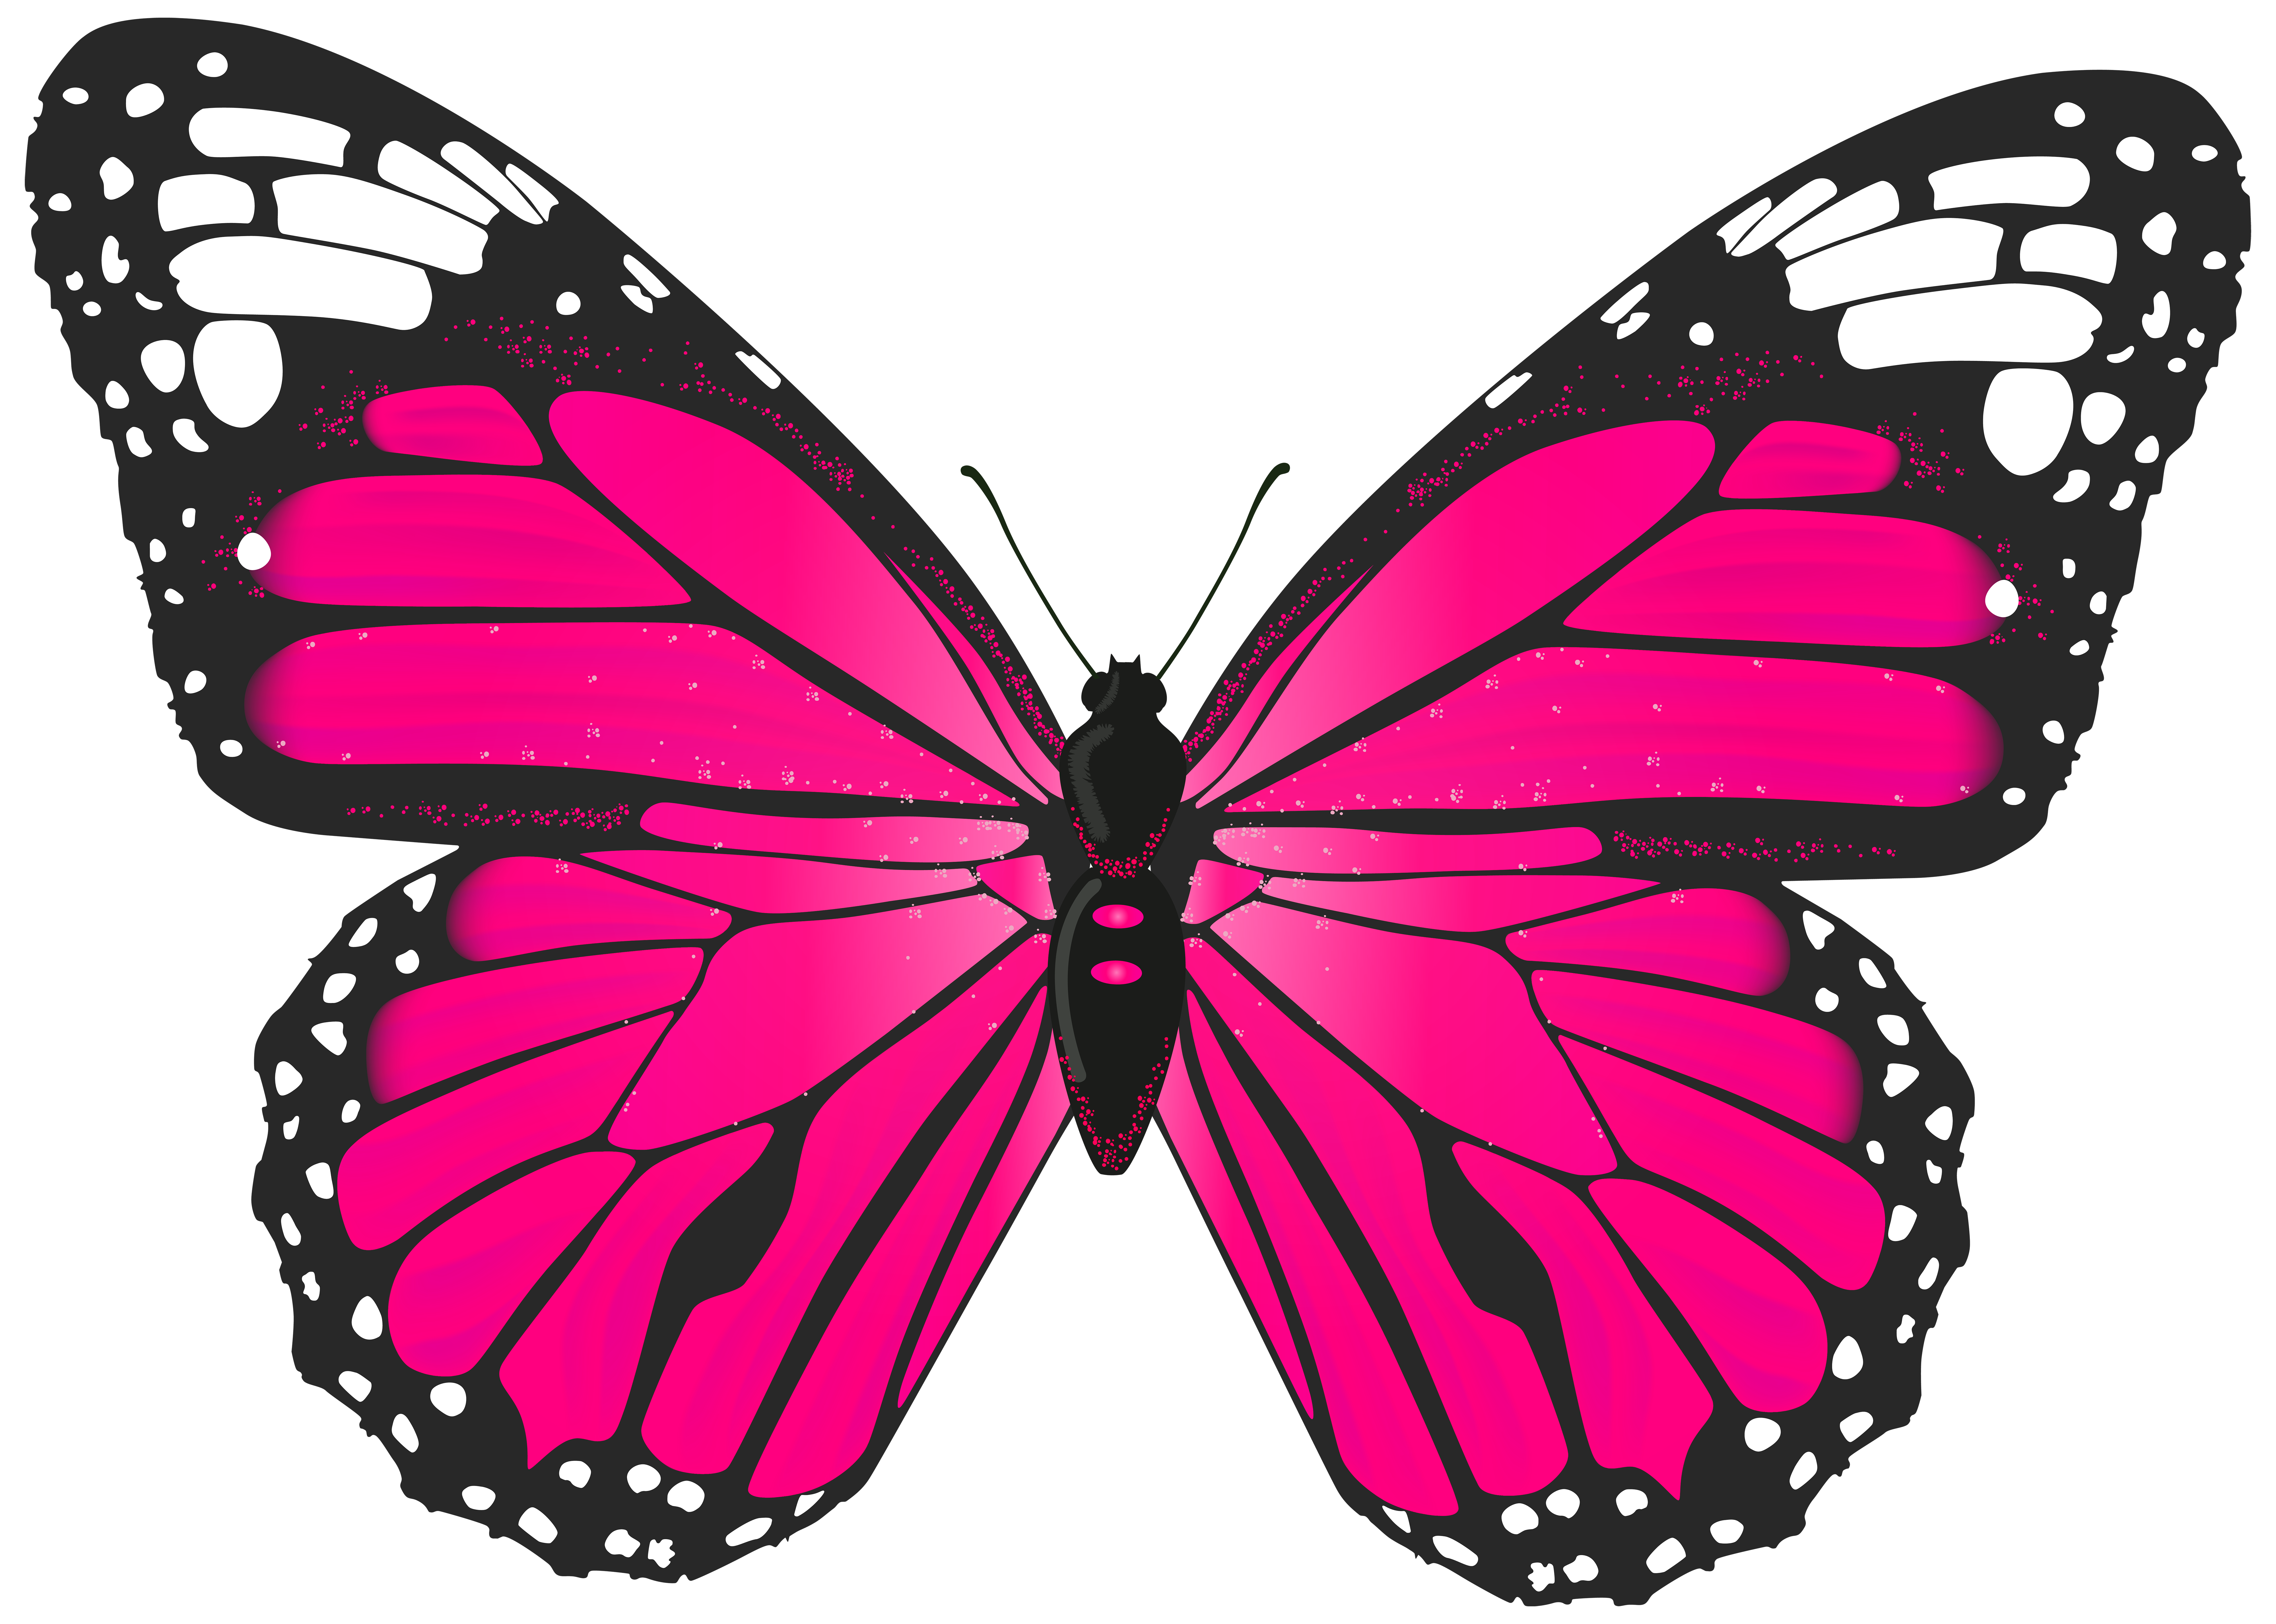 Pink butterfly png. Transparent clip art image